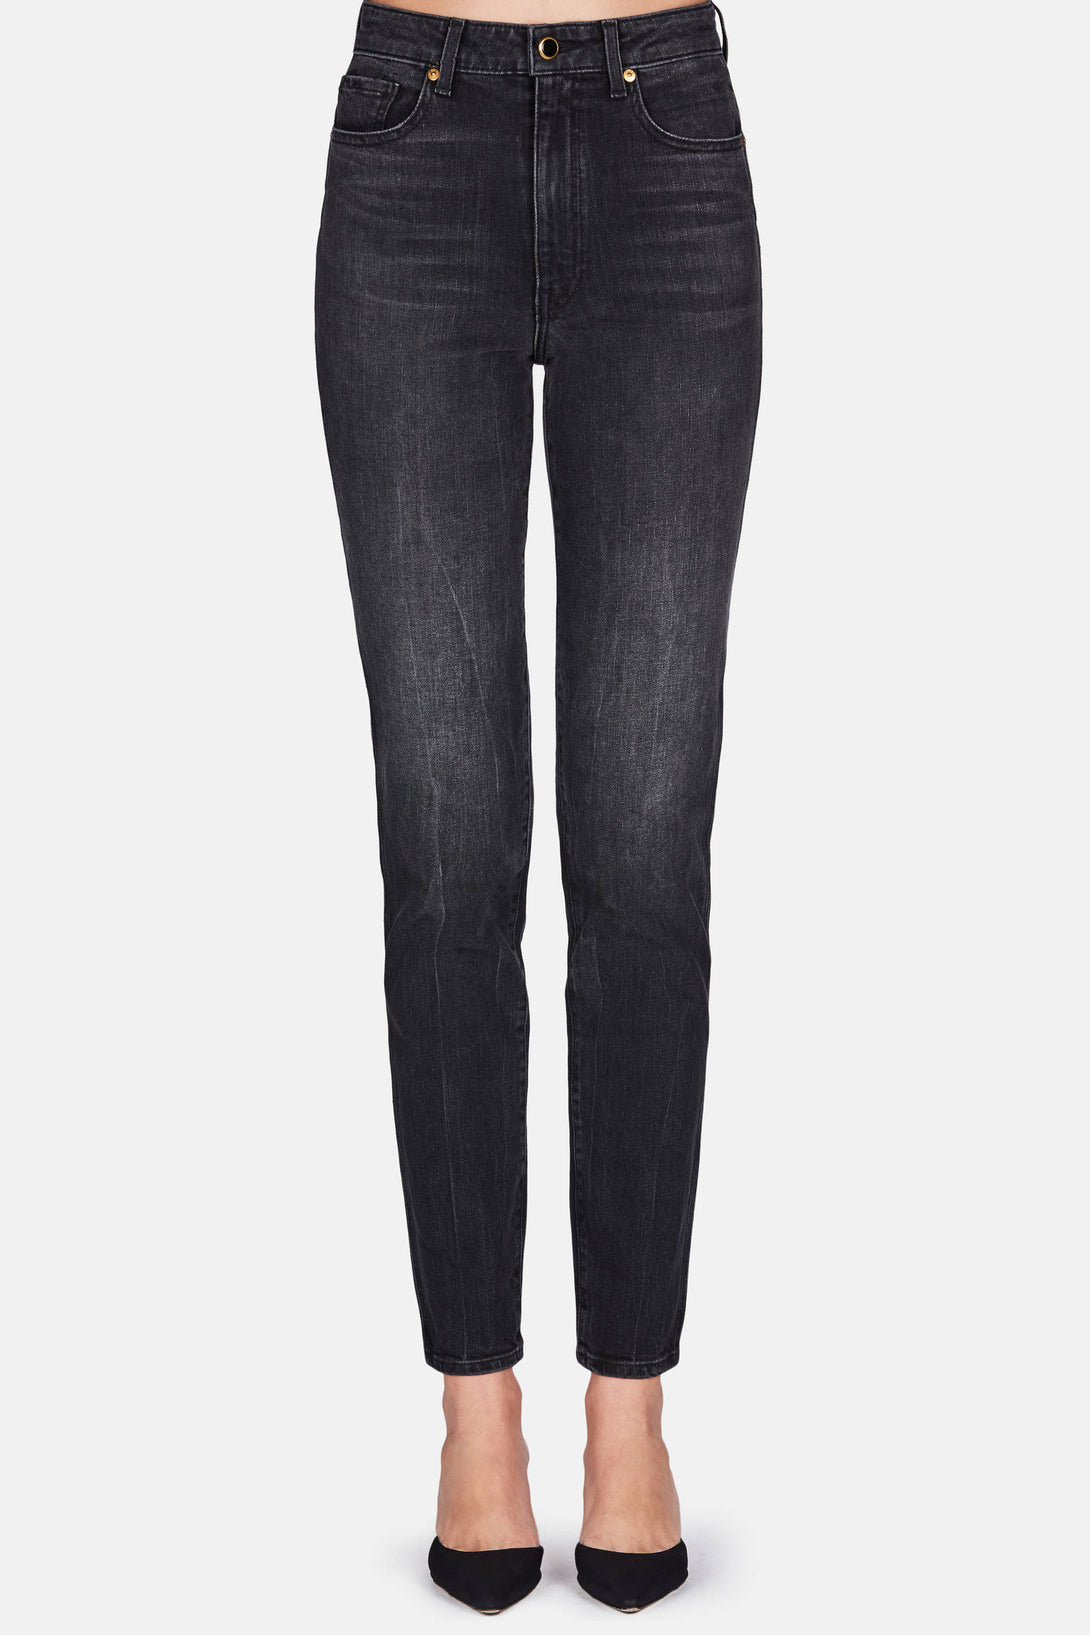 Vanessa High Rise Straight Jean - Black Vintage